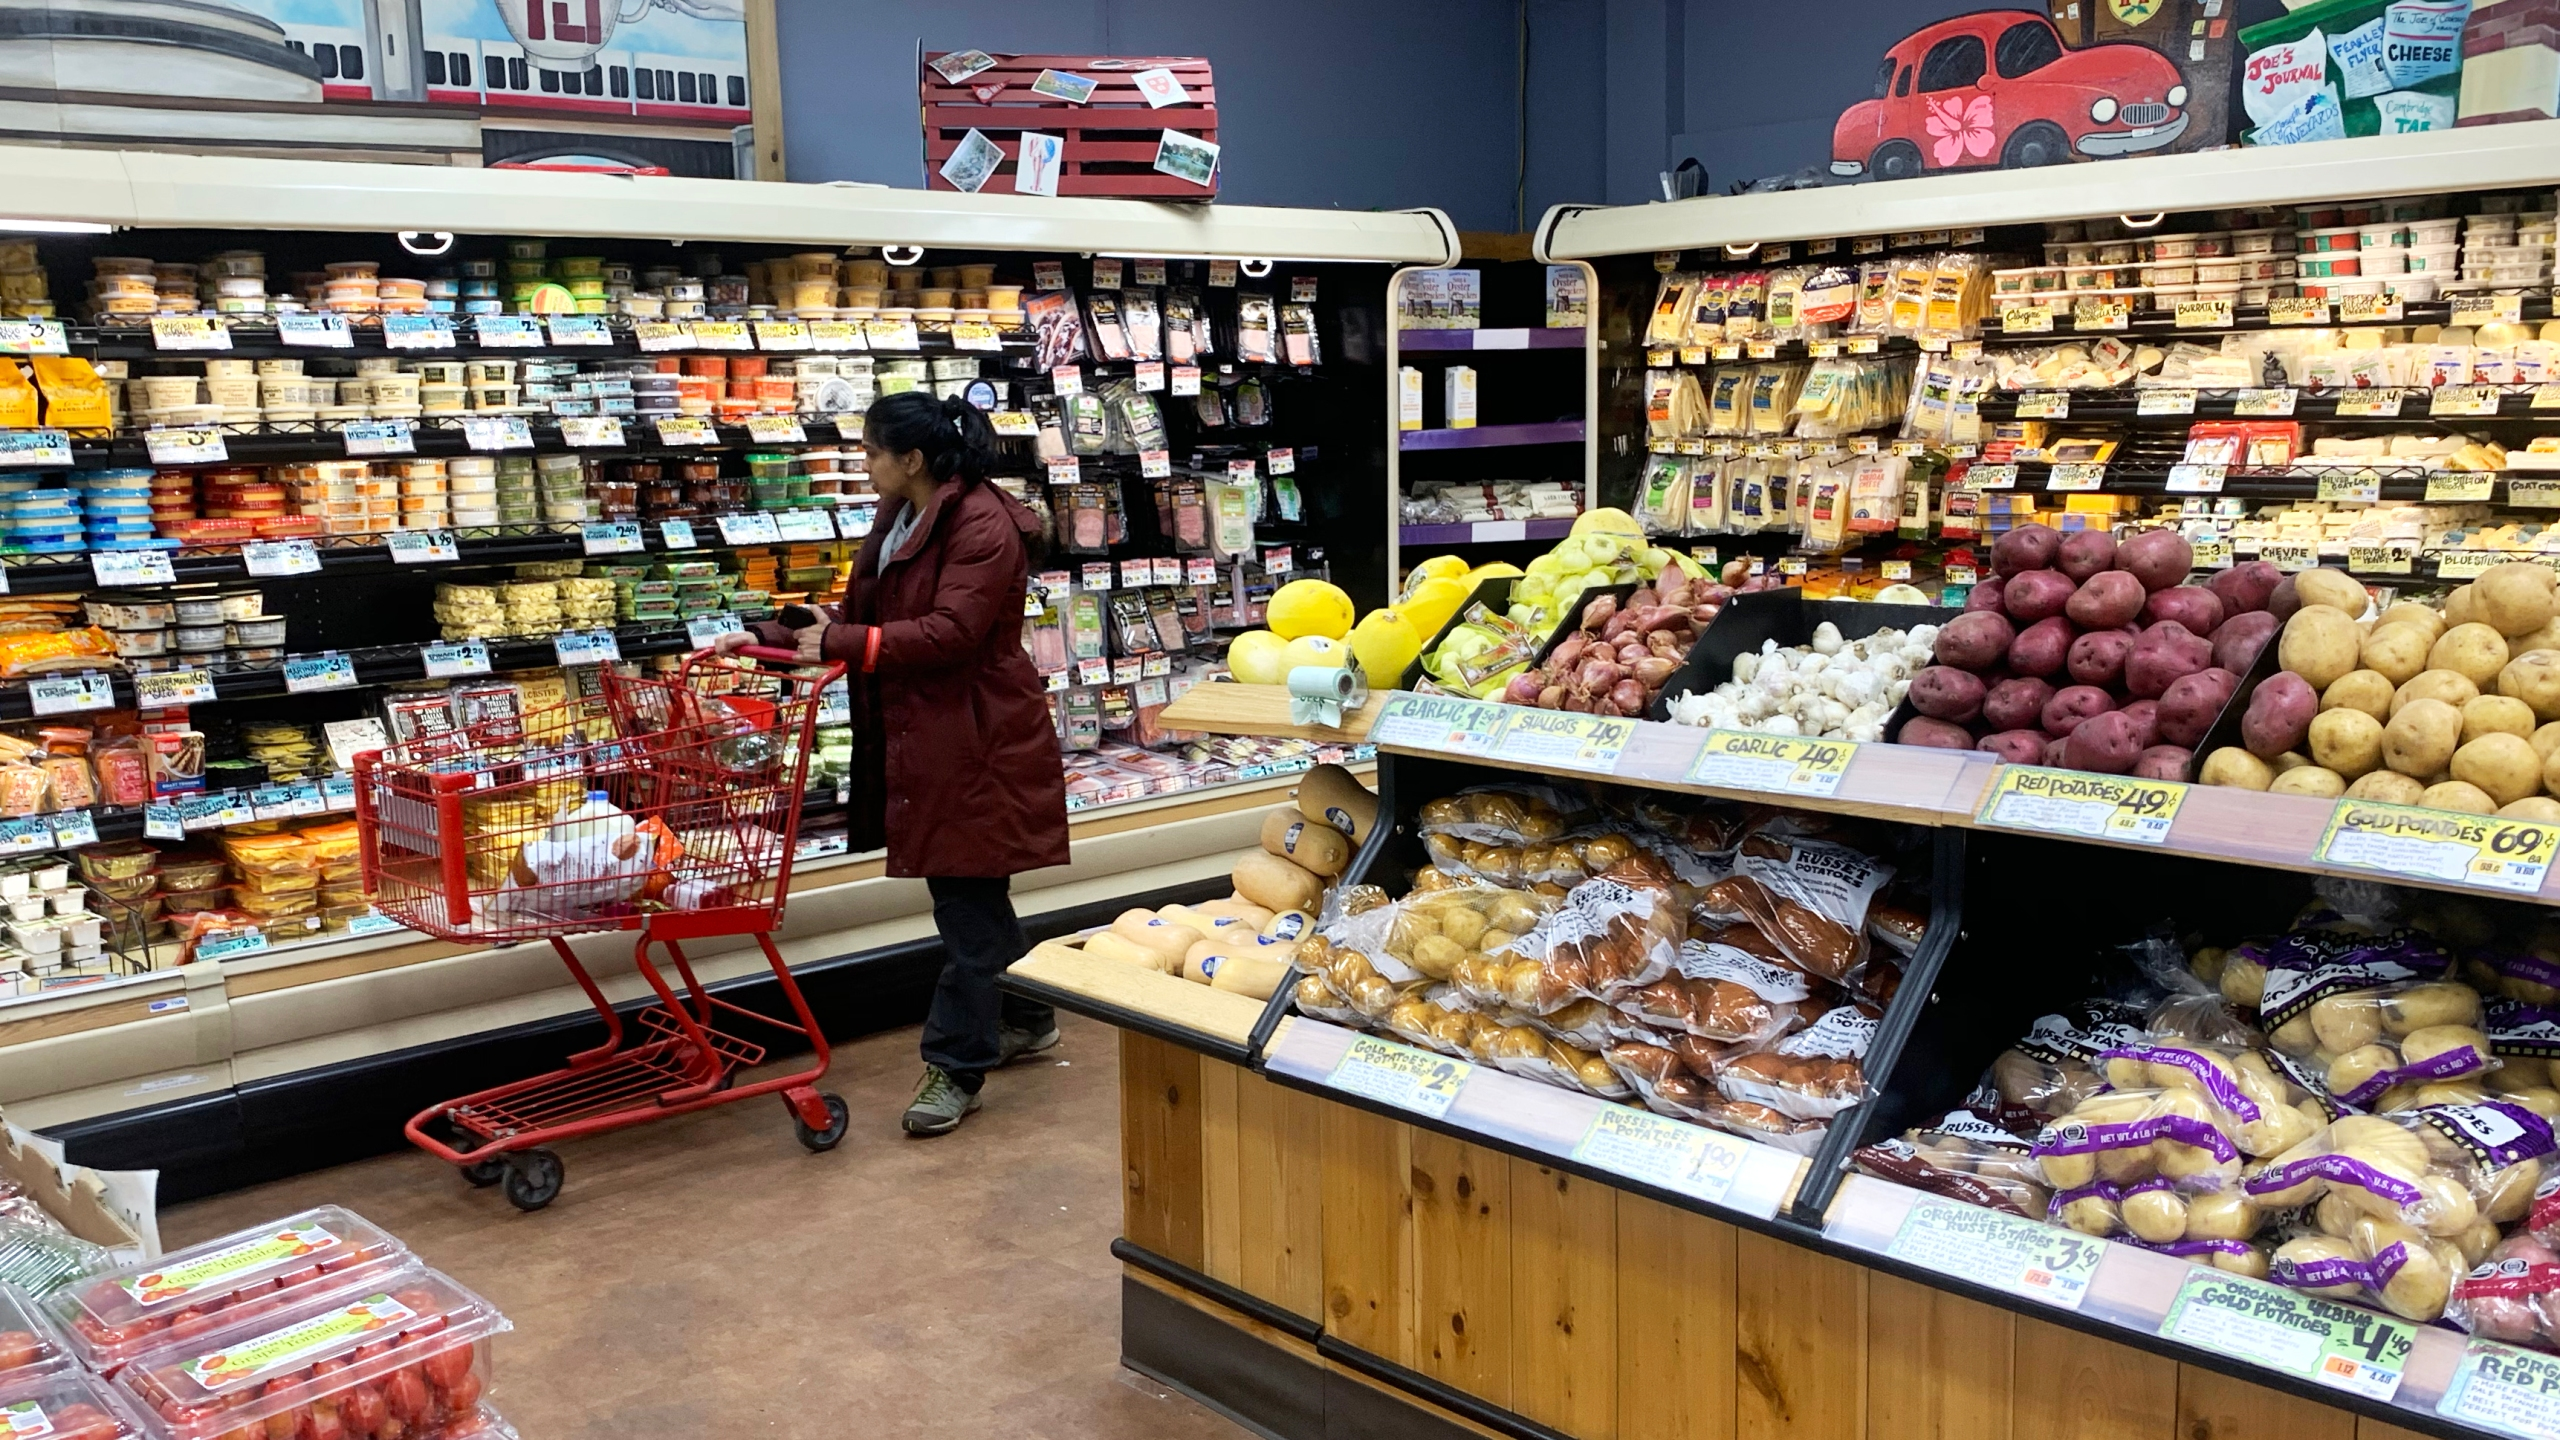 A woman shops at Trader Joes at on March 23, 2020 in Cambridge, Massachusetts. The store has begun limiting the capacity of shoppers allowed inside, and offering sanitizing wipes upon entry. (Maddie Meyer/Getty Images)